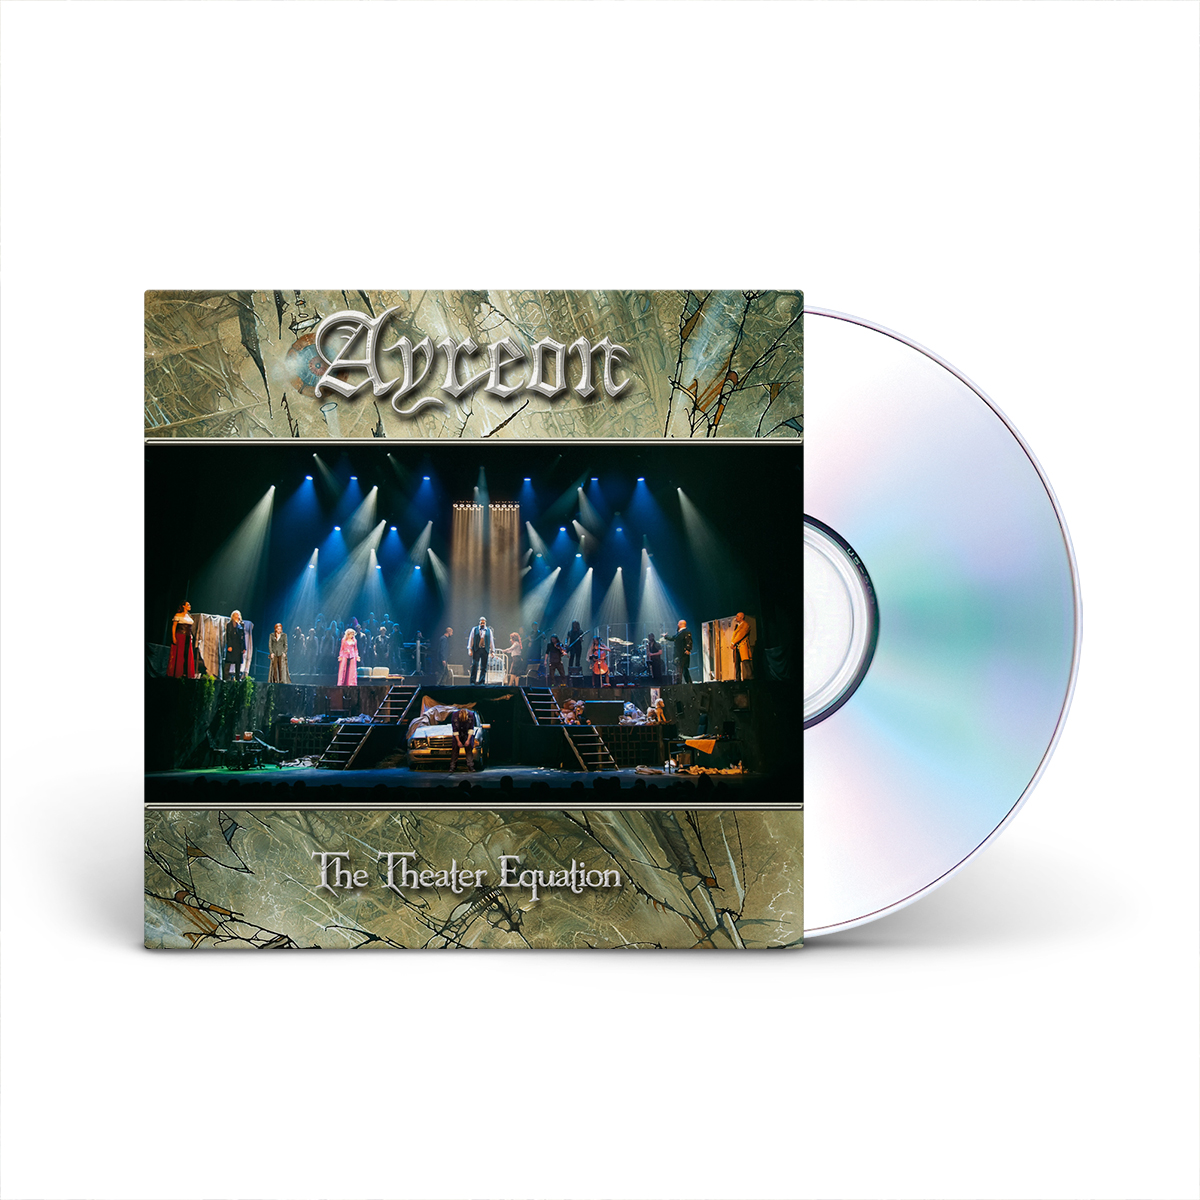 Ayreon - The Theater Equation 2 CD + DVD Set